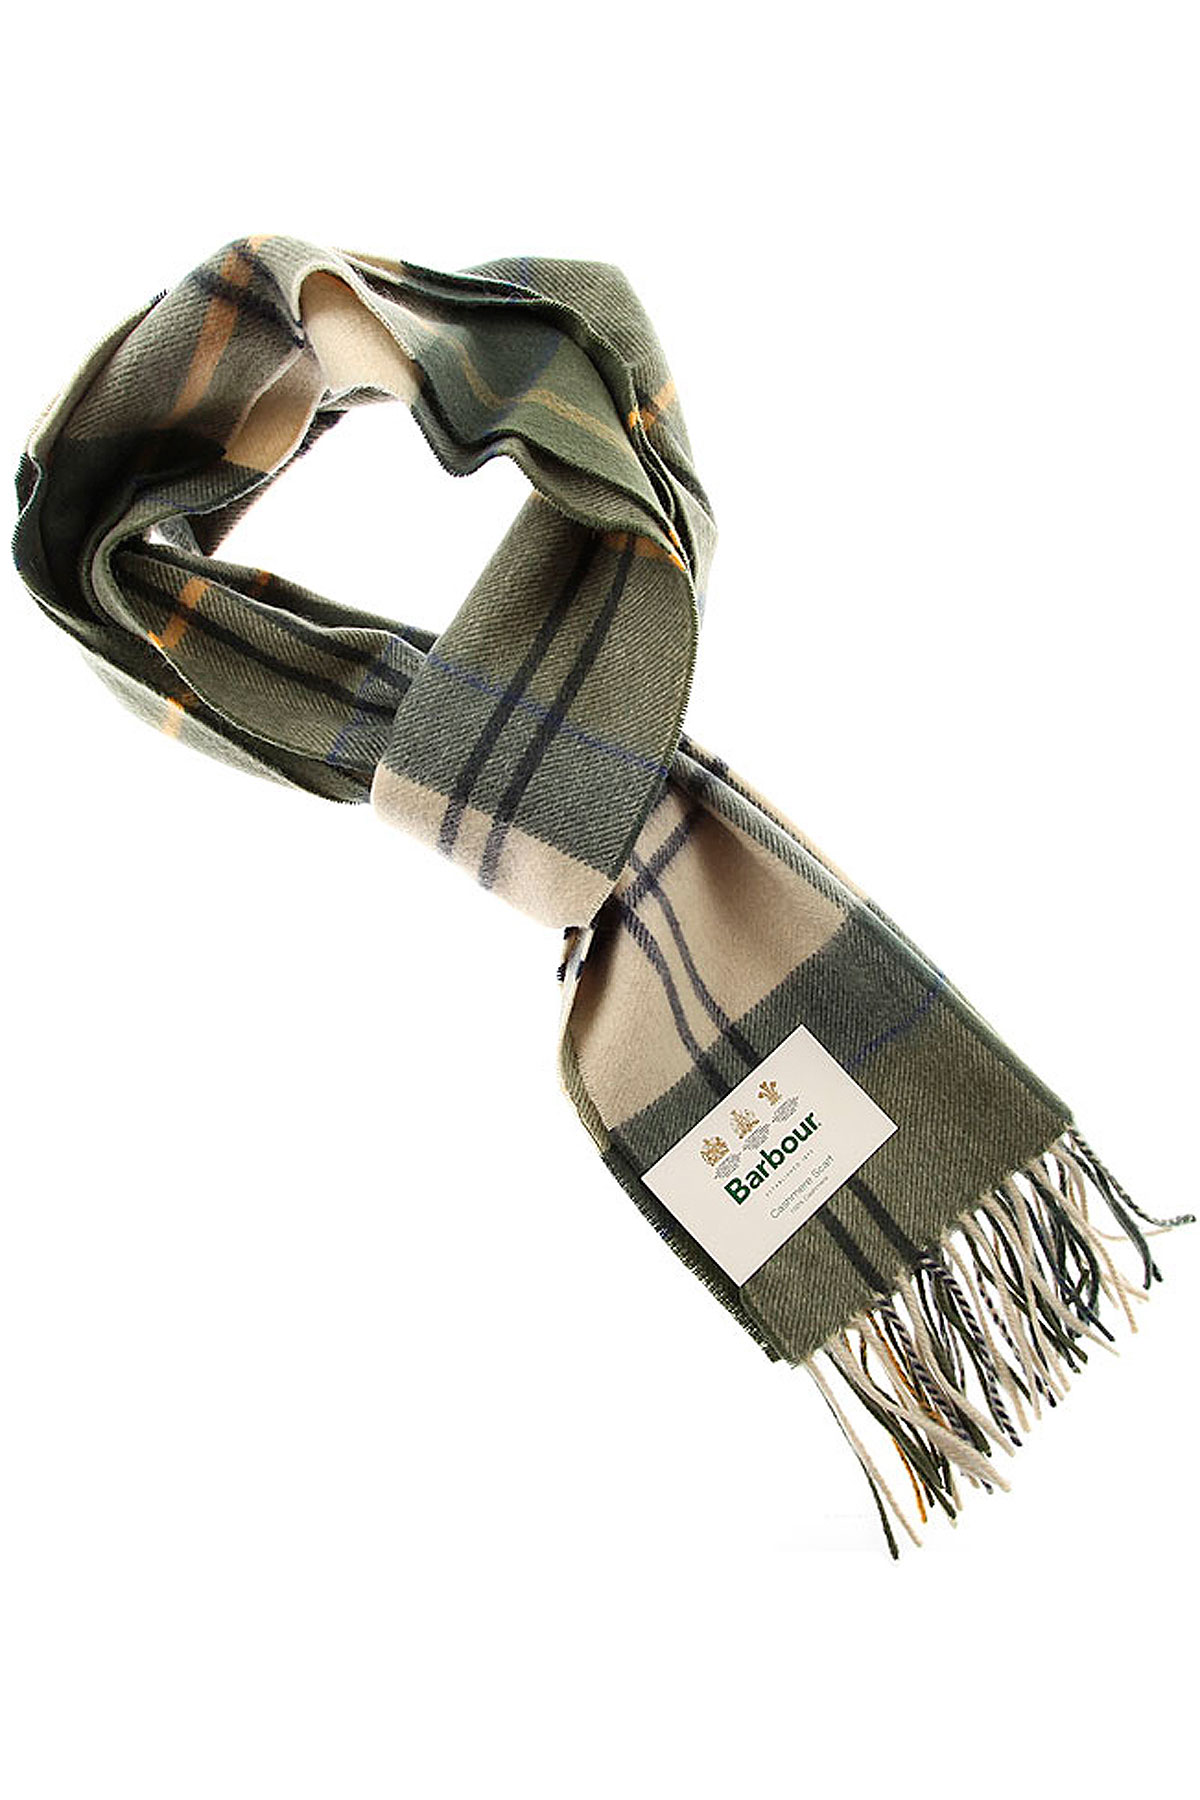 Image of Barbour Scarf for Men, Green, Cashmere, 2017